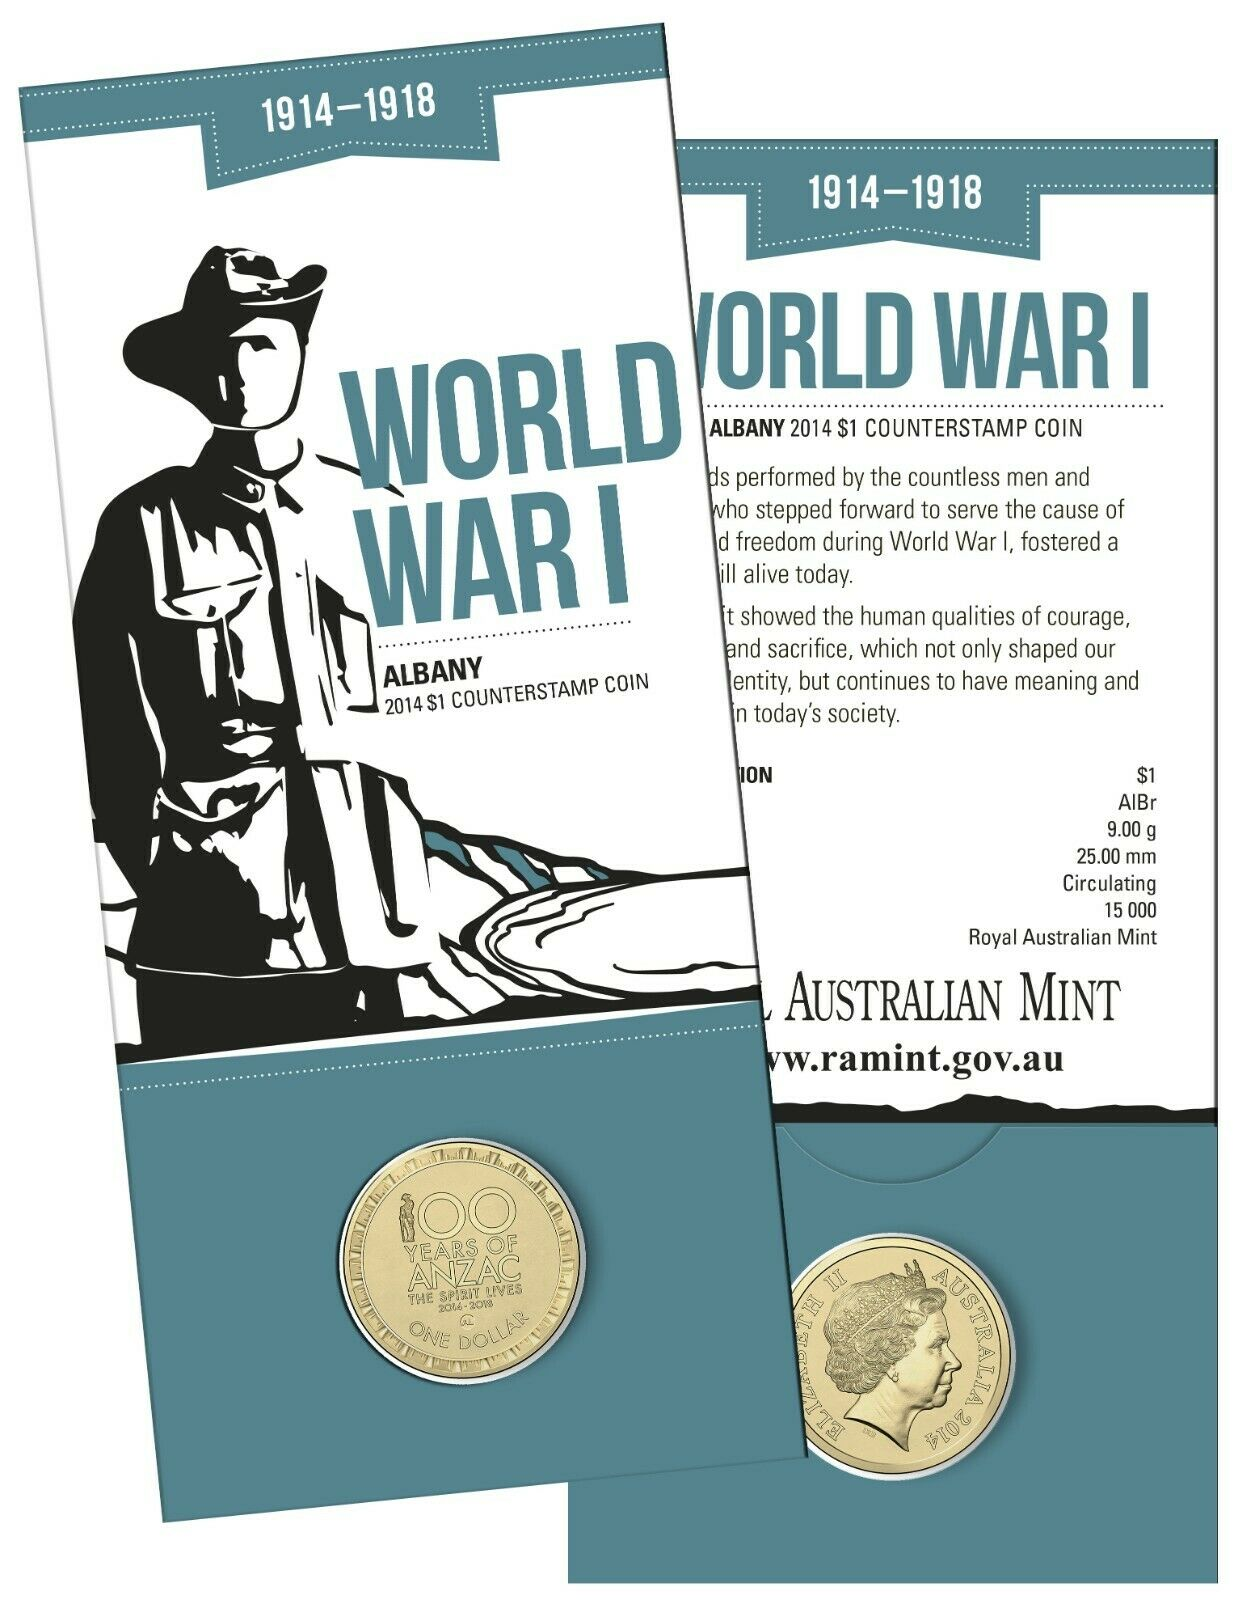 Thumbnail for 2014 Australia 100 Years of WWI $1.00 with Albany Counterstamp